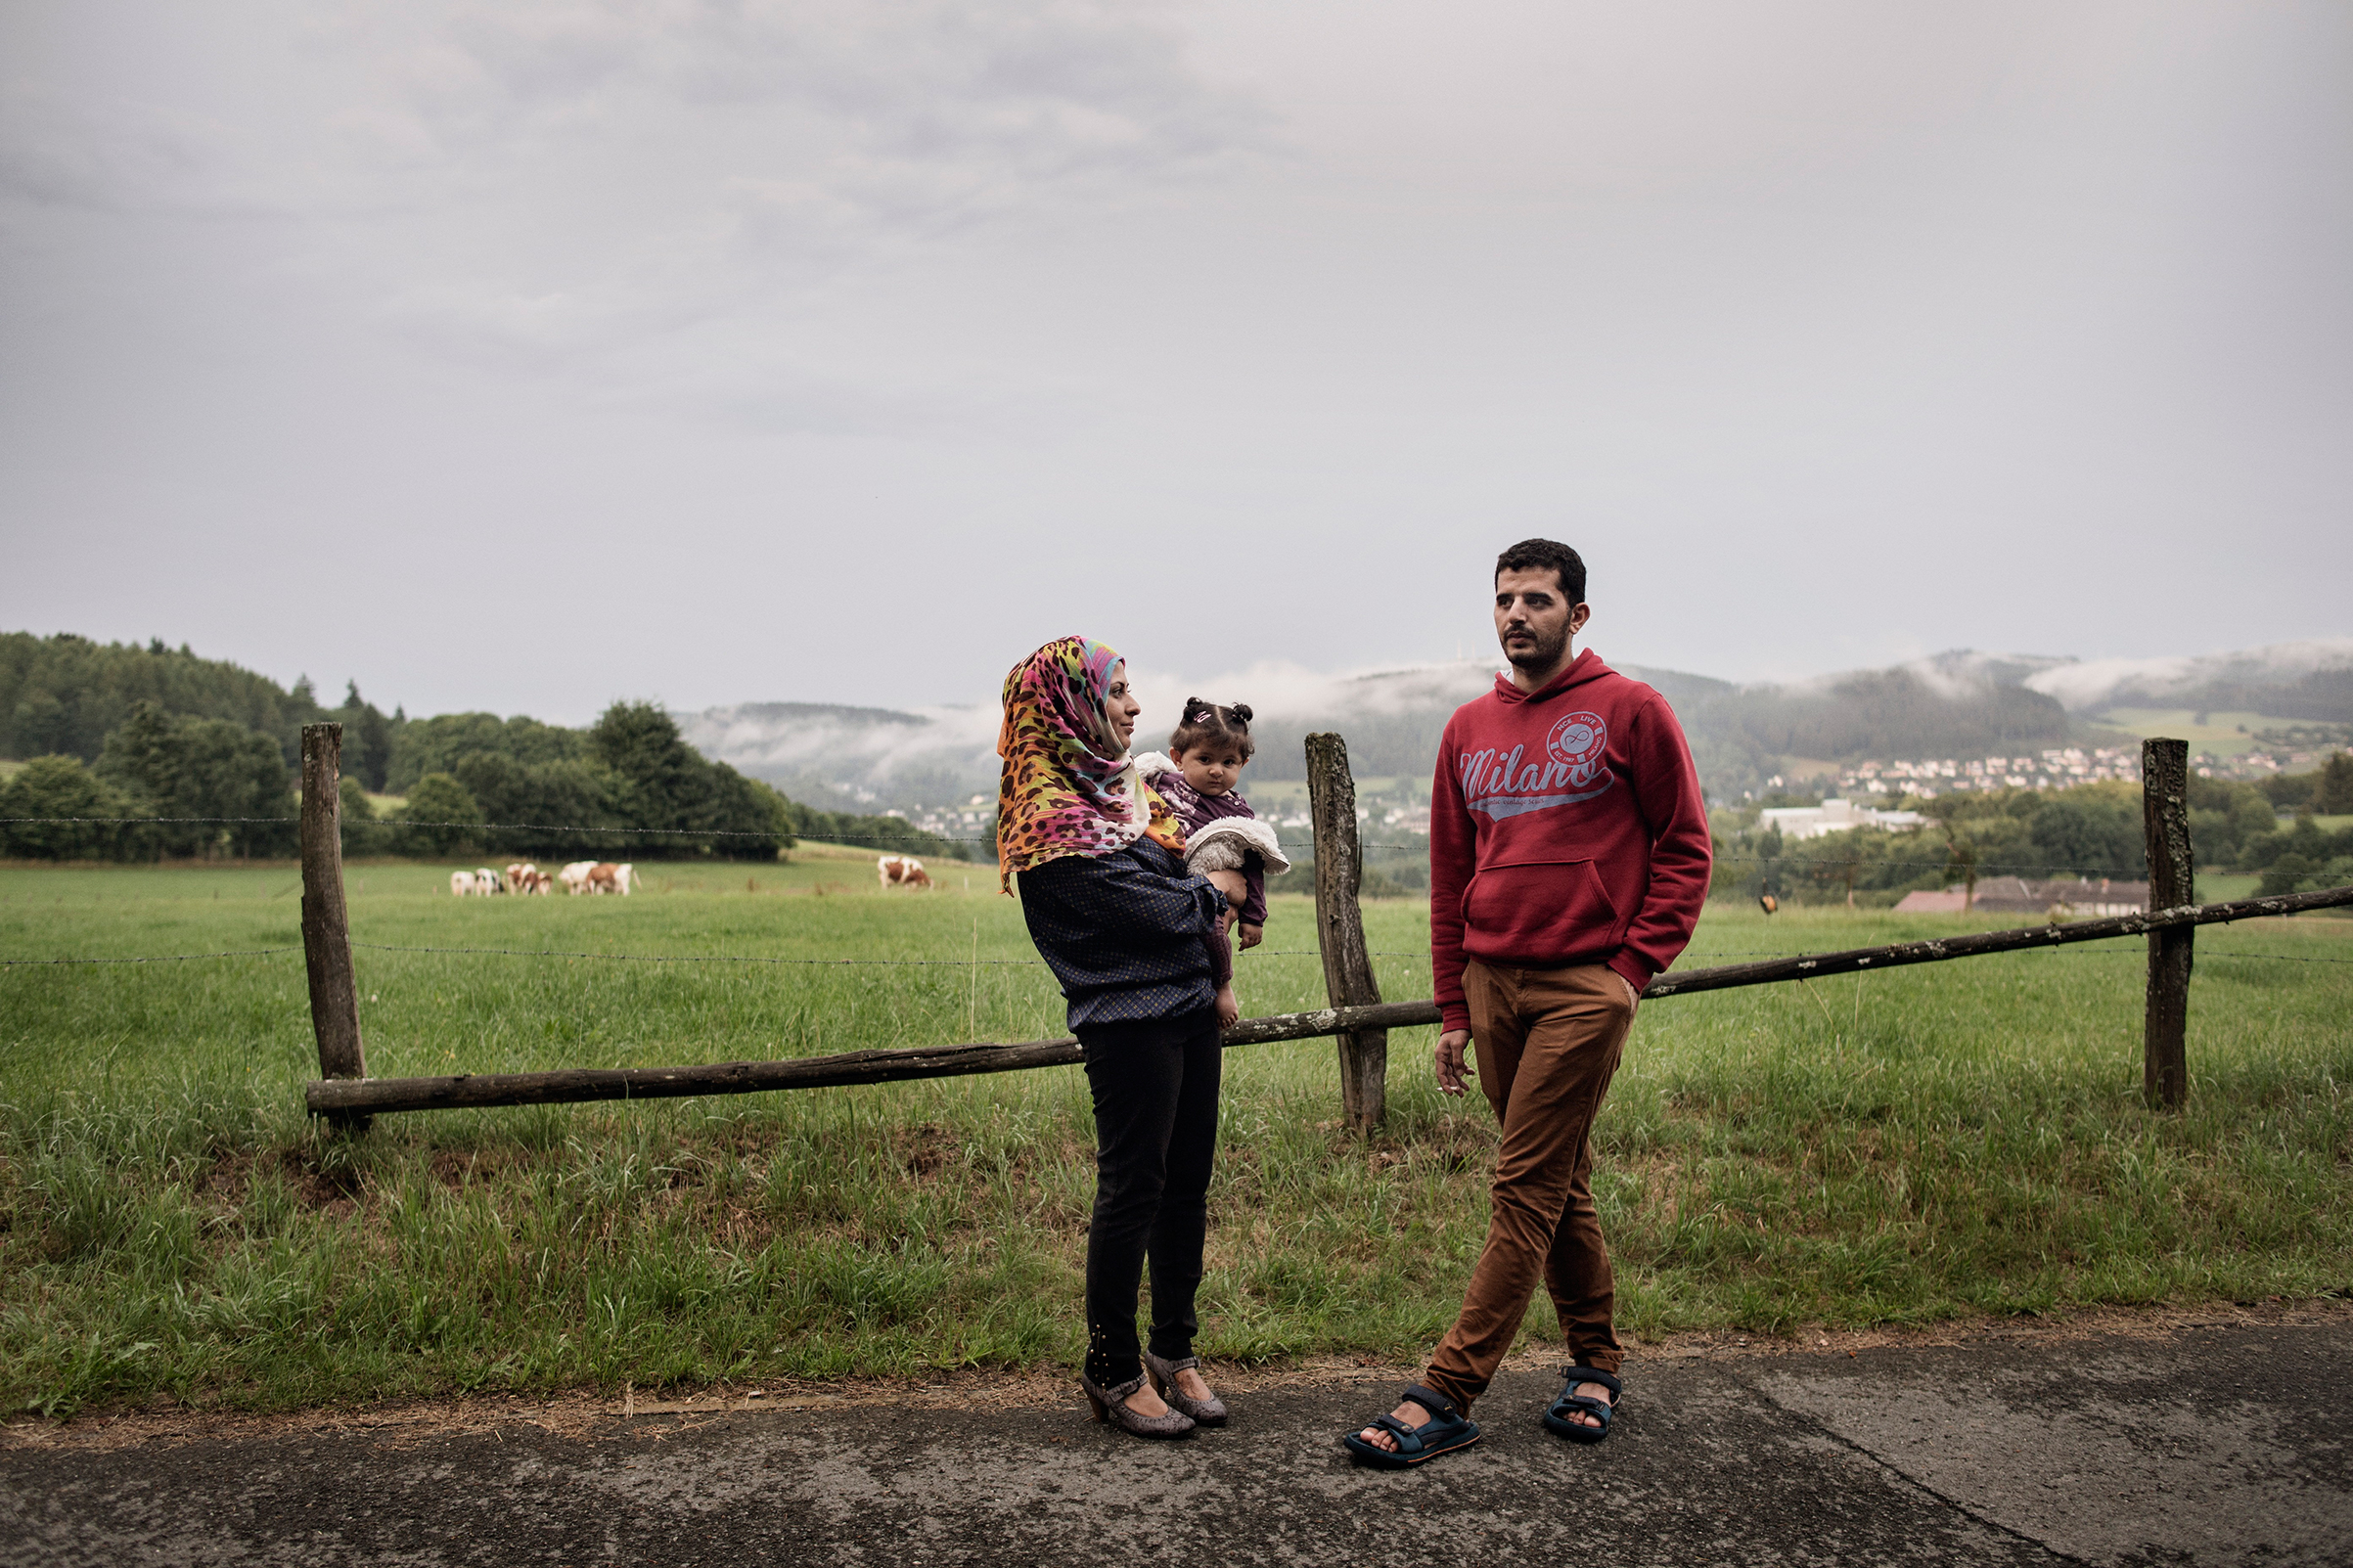 Nour Altallaa, her husband Yousef Alarsan and their daughter Rahaf explore their new home in a camp near Bad Berleburg,                    Germany, on July 19